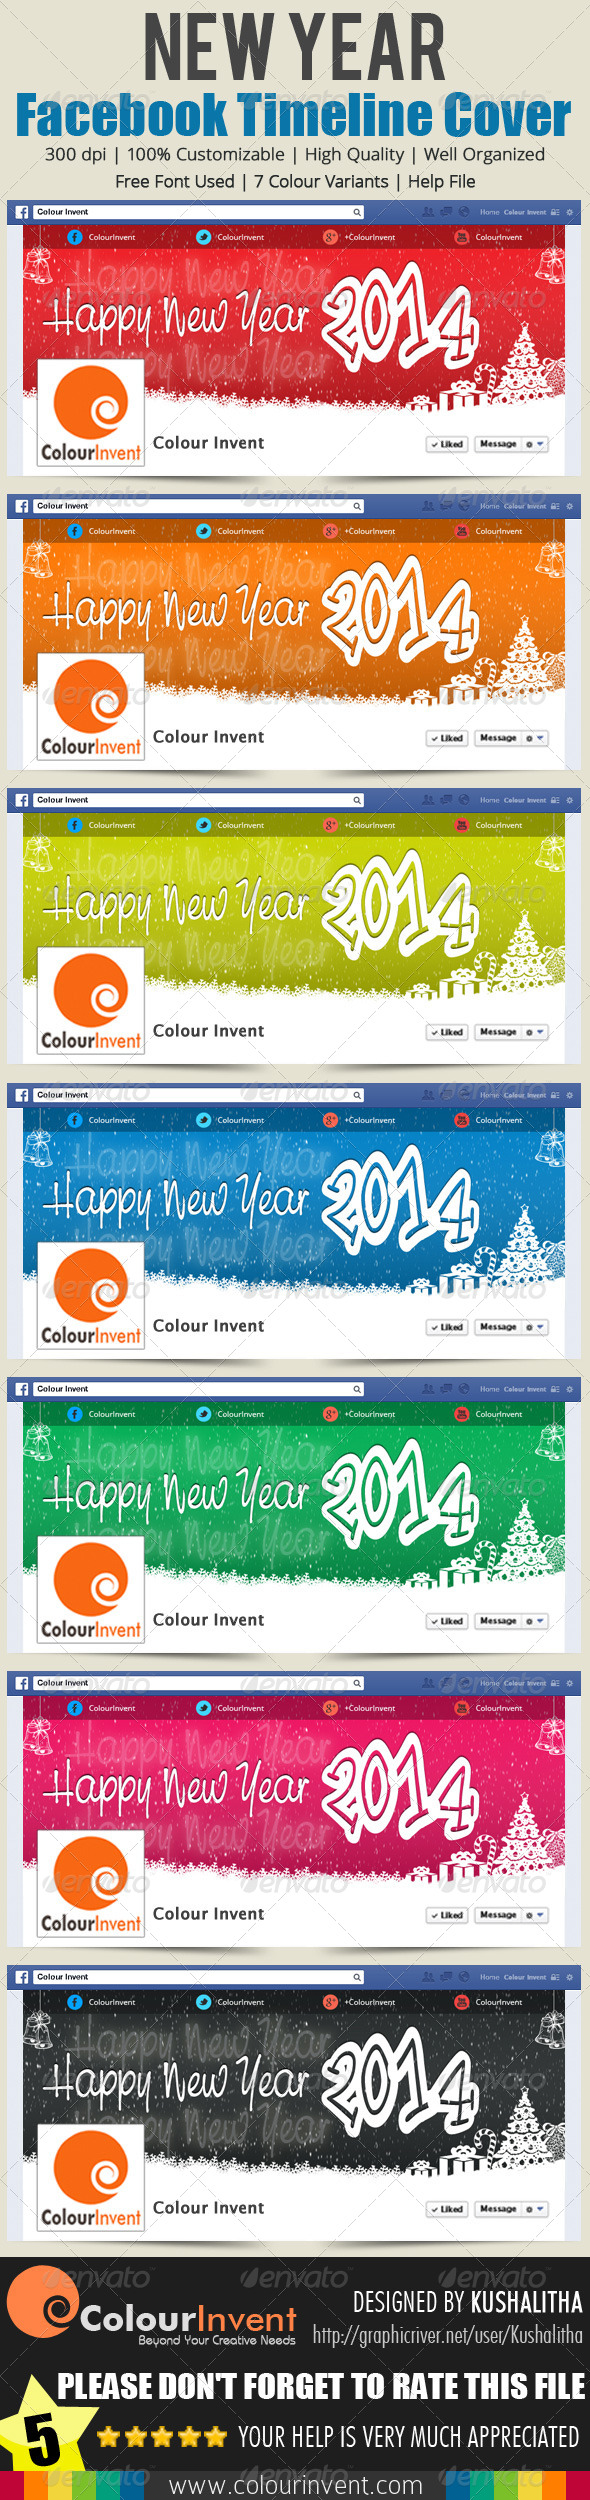 New Year Facebook Cover - Facebook Timeline Covers Social Media